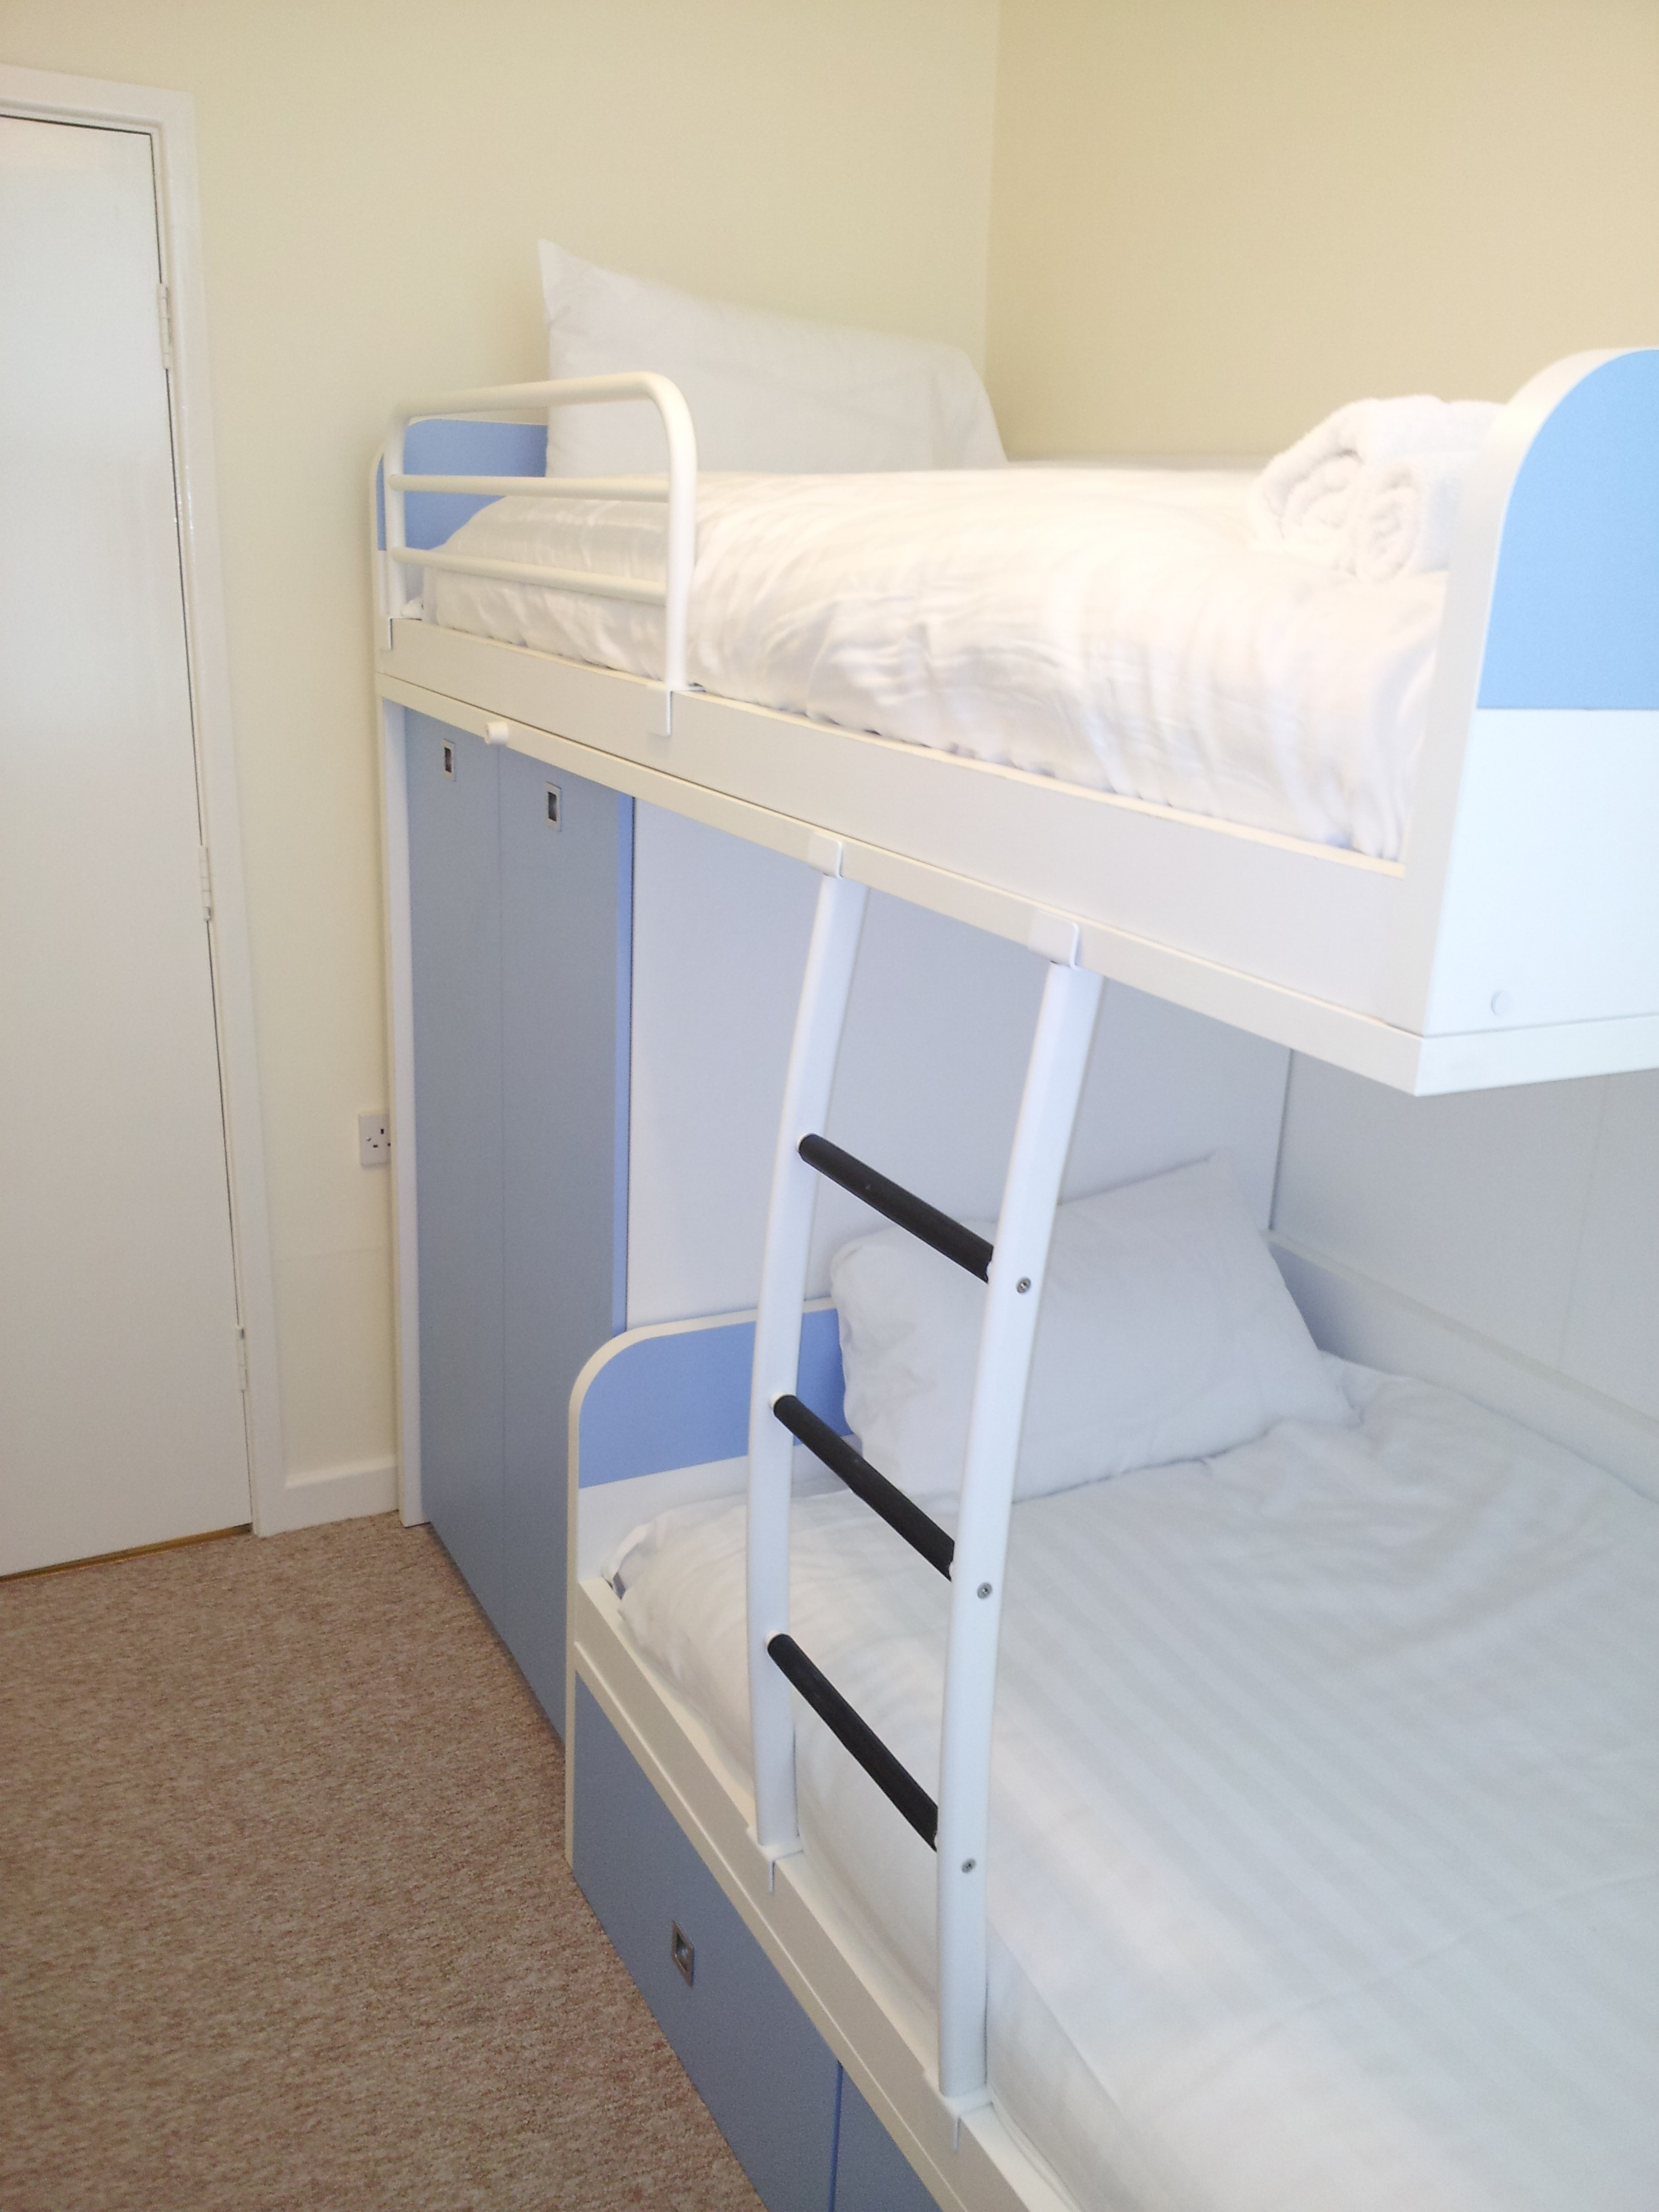 The second bedroom has a comfortable bunk bed with storage.